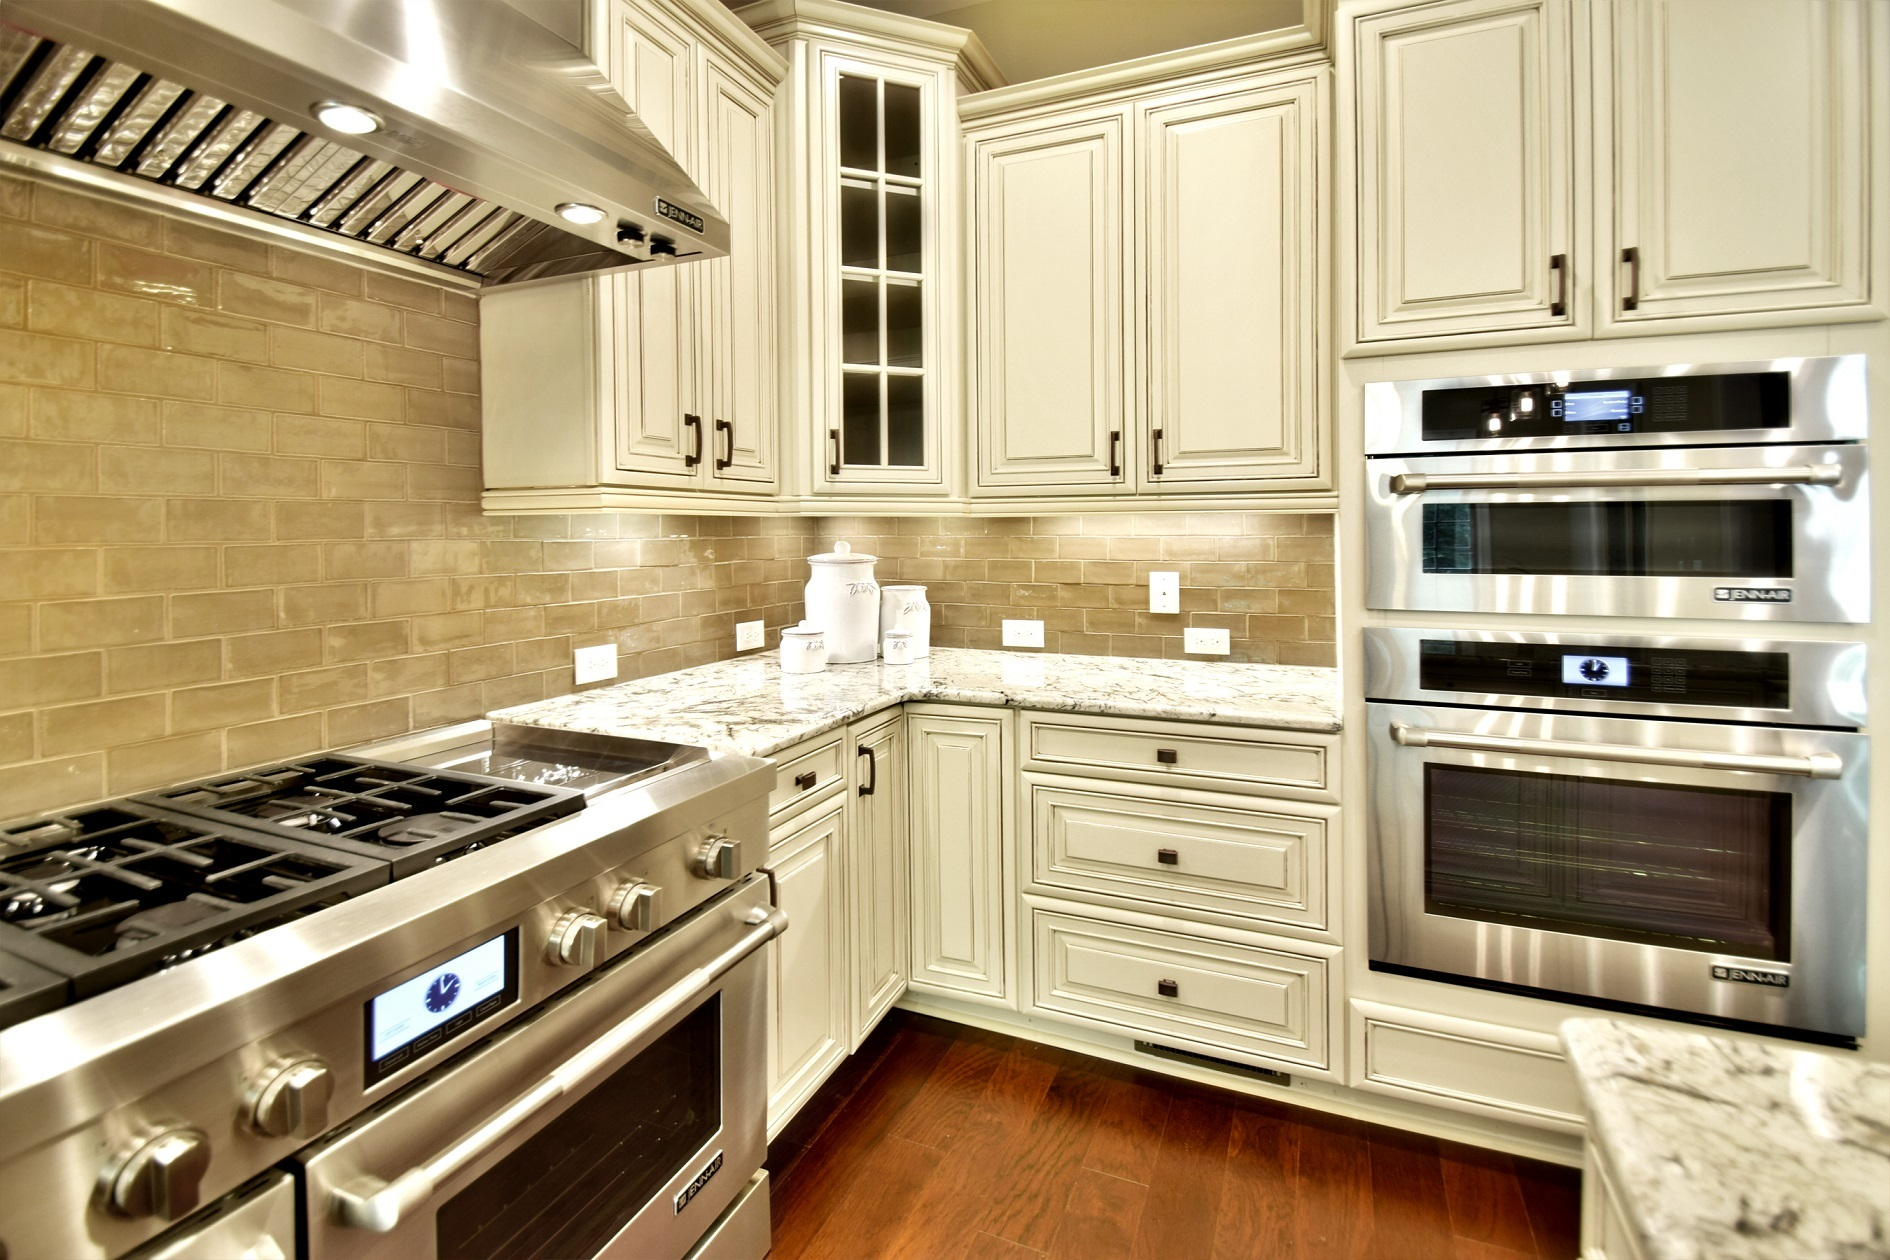 Tips to Declutter Your Kitchen in the New Year